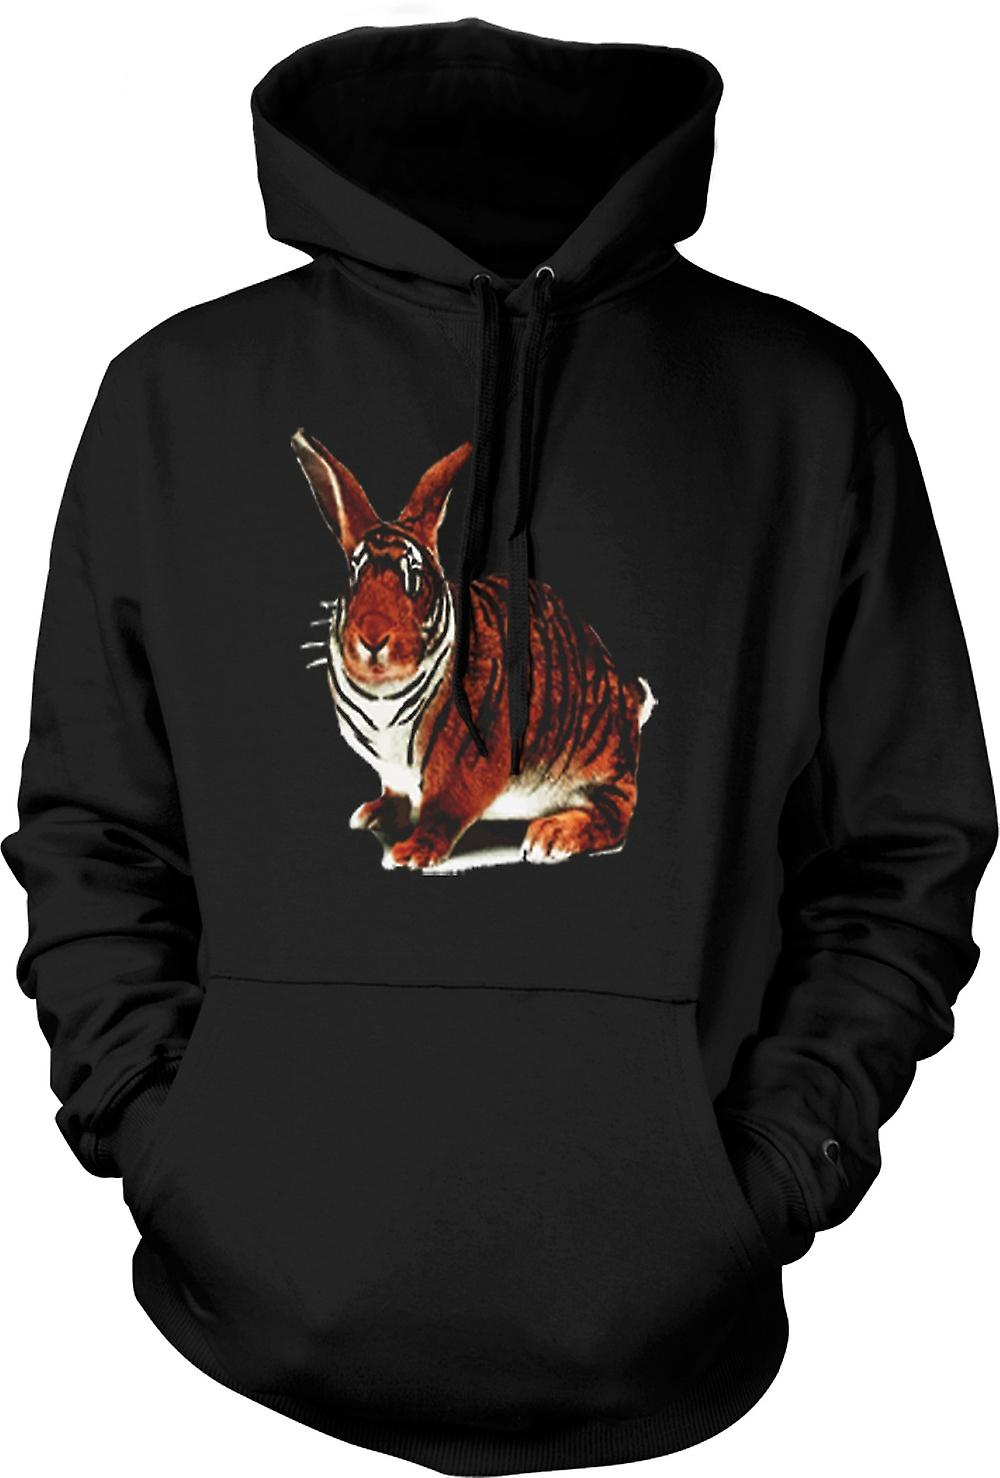 Mens Hoodie - Tiger Lapin Pop Art Design